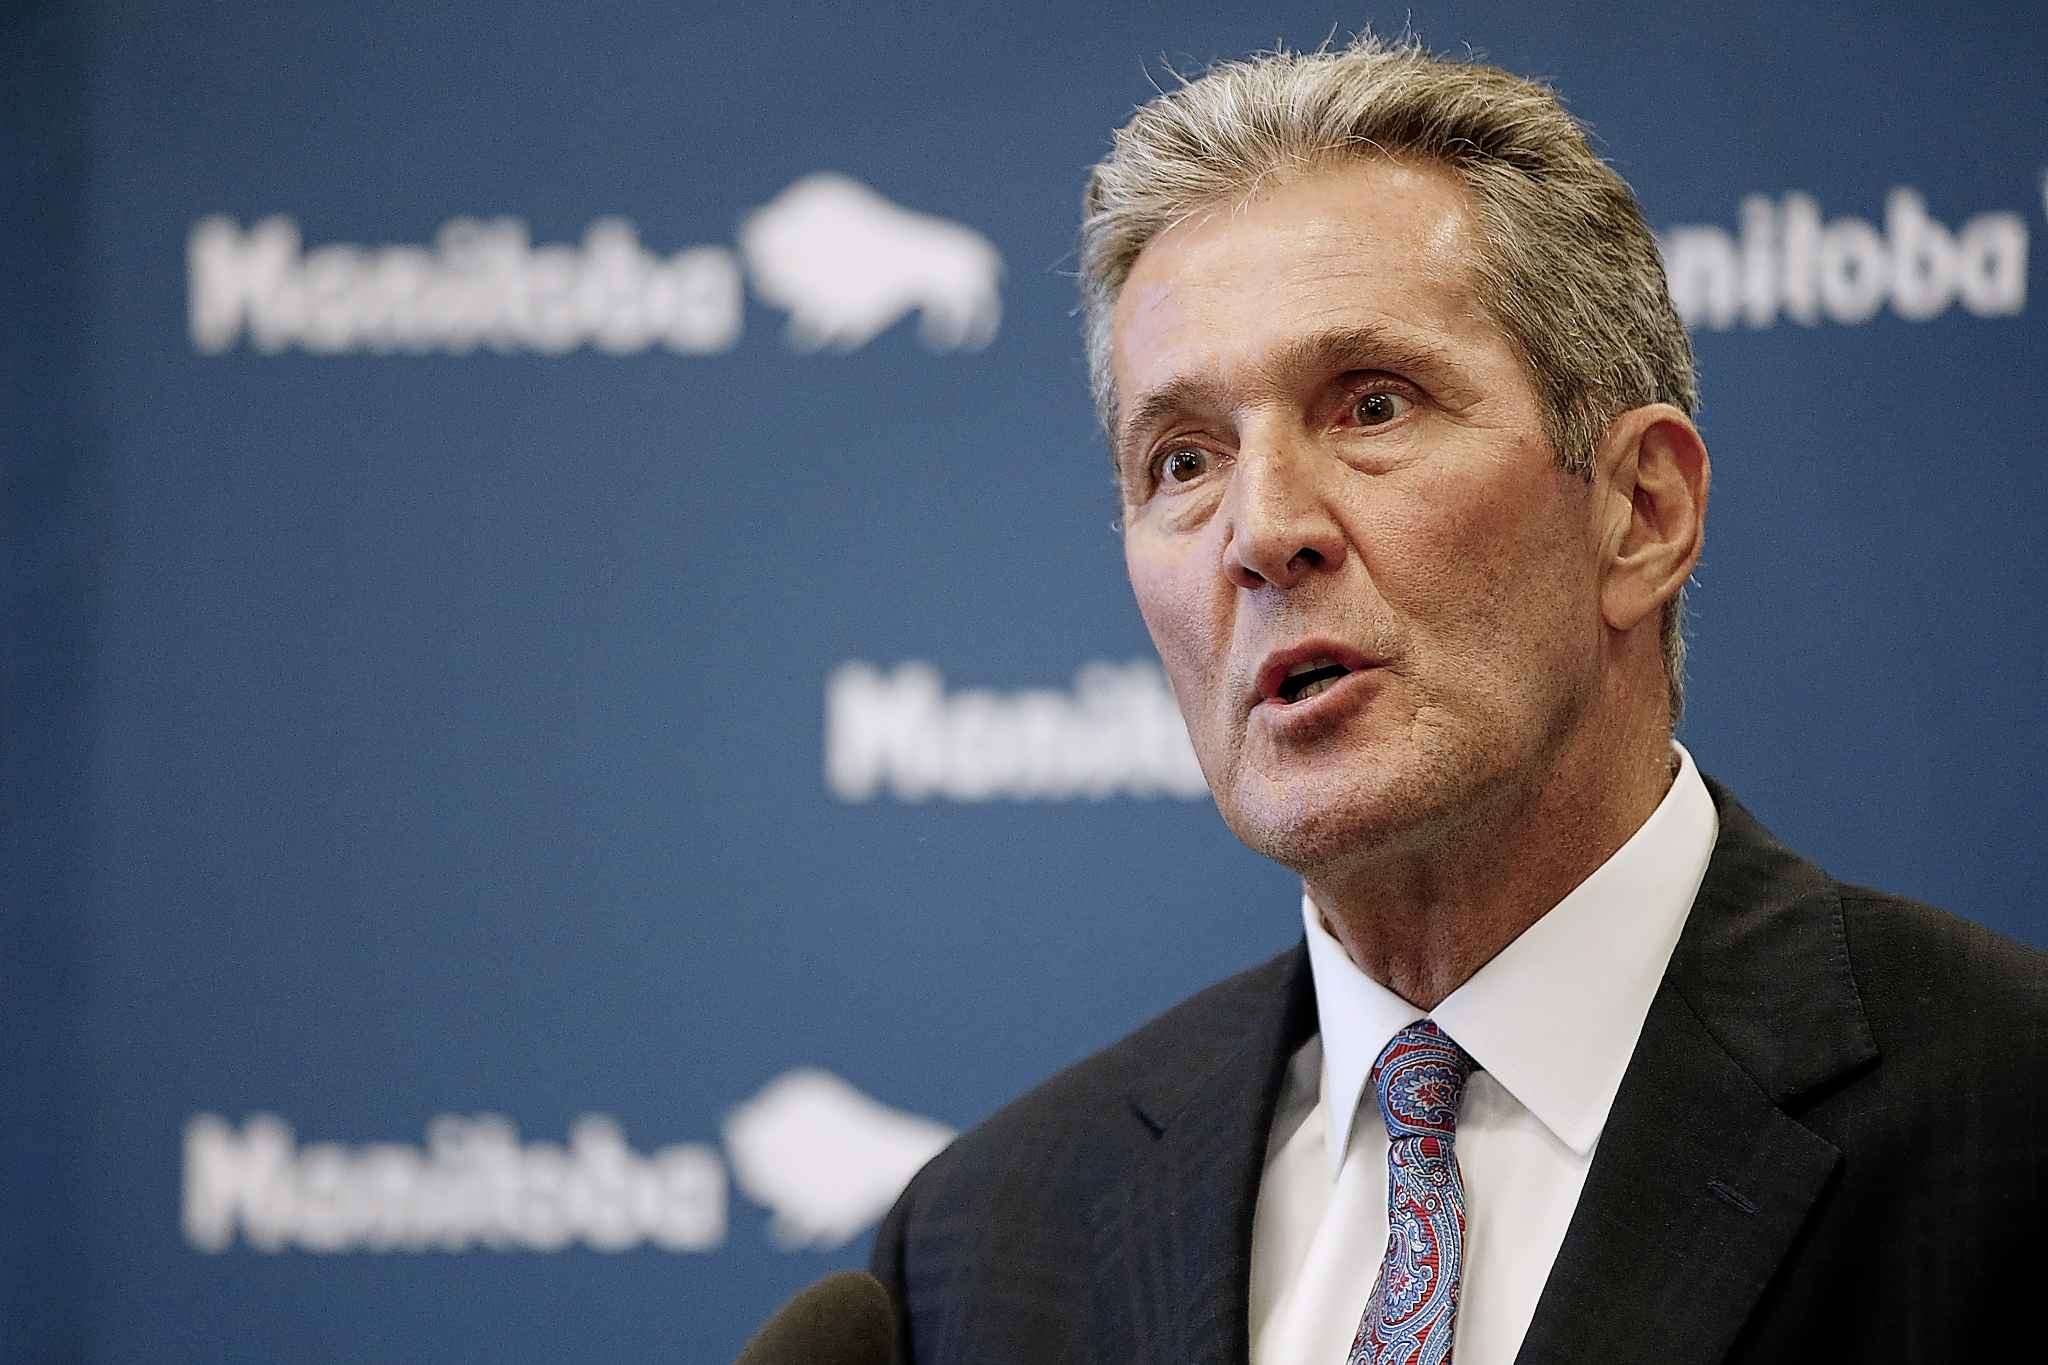 Manitoba premier Brian Pallister speaks to media after the tabling of his party's provincial budget was filibustered by the opposition NDP at the Manitoba Legislature on Wednesday March 11, 2020. (John Woods / Canadian Press files)